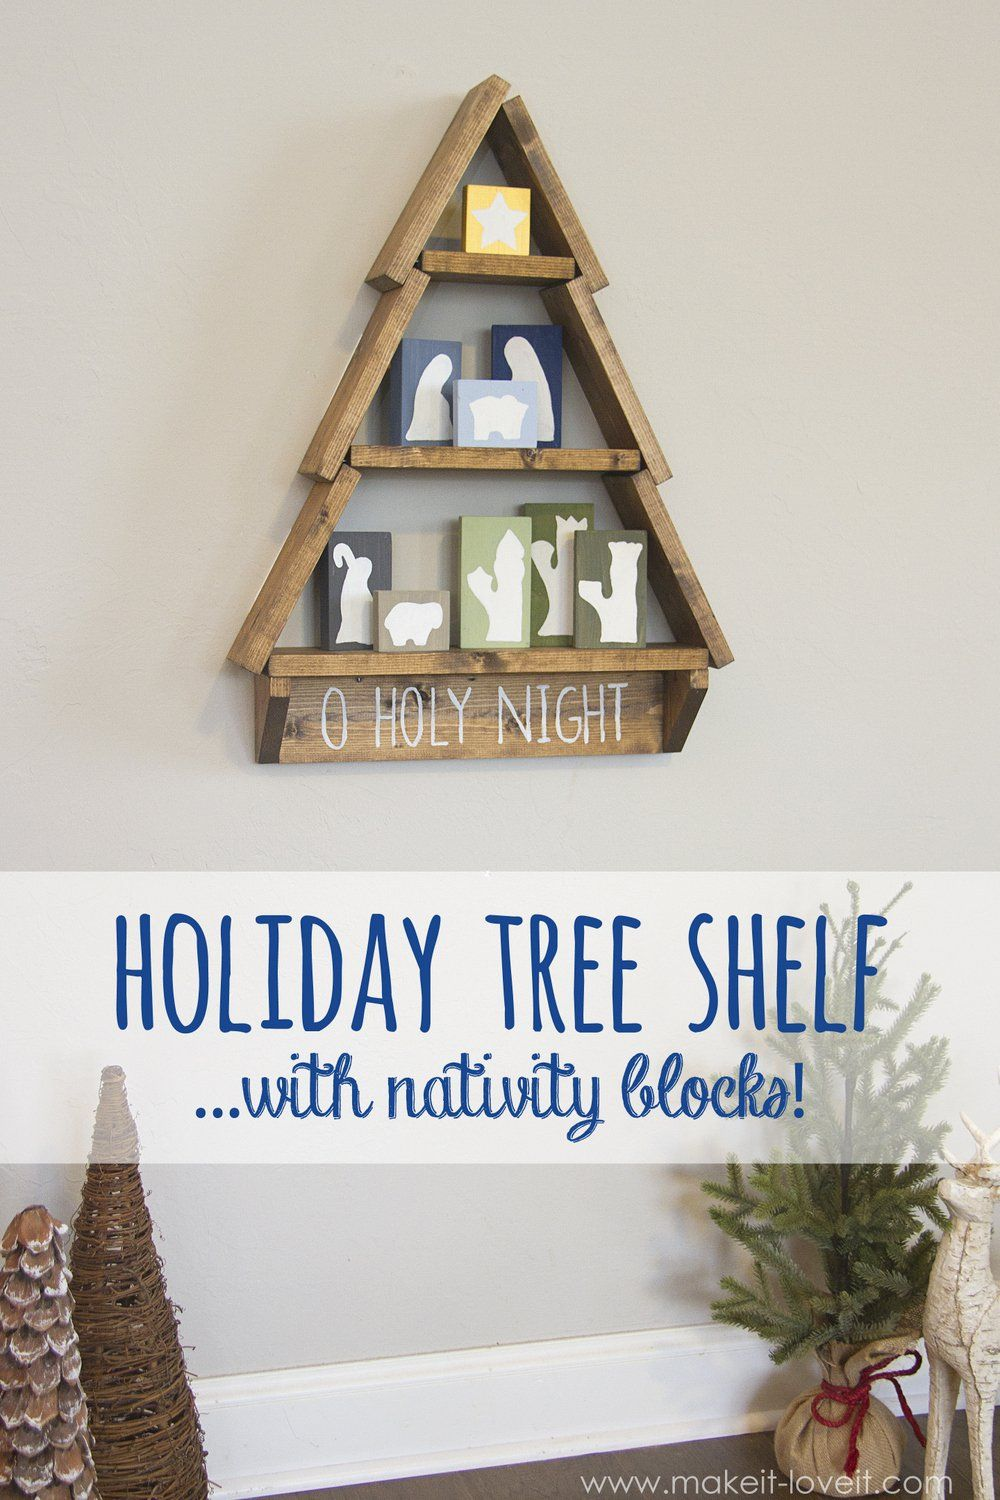 Diy holiday tree shelfwith nativity blocks make it and love it so last week i mentioned i would be joining in on a virtual do it yourself partys that darling holiday tree shelf its a super quick project that solutioingenieria Image collections